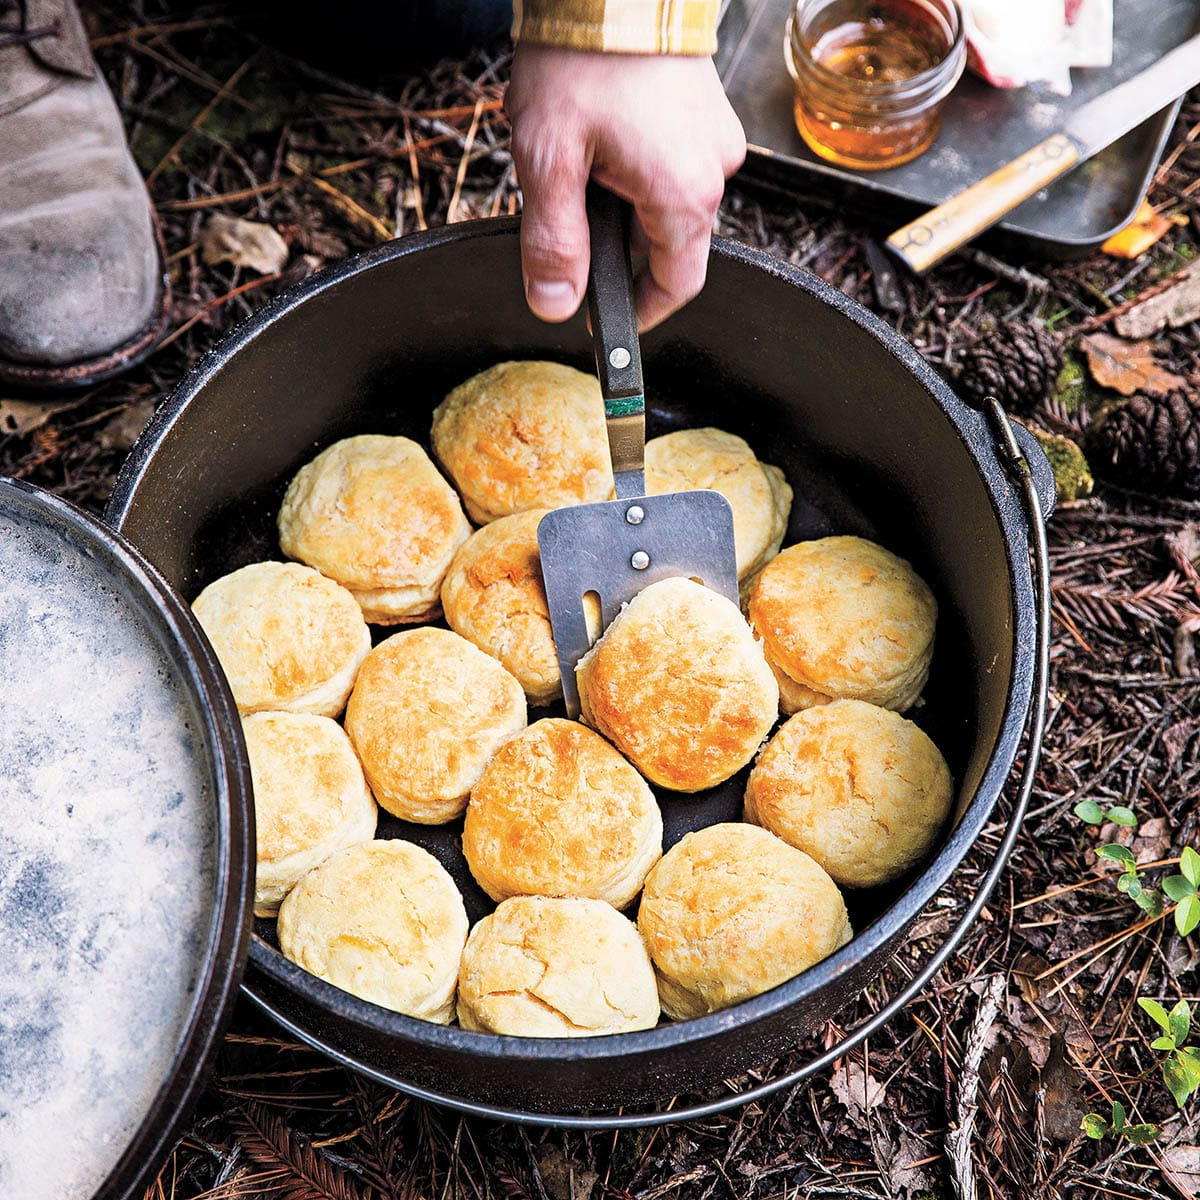 Biscuits in a Dutch oven